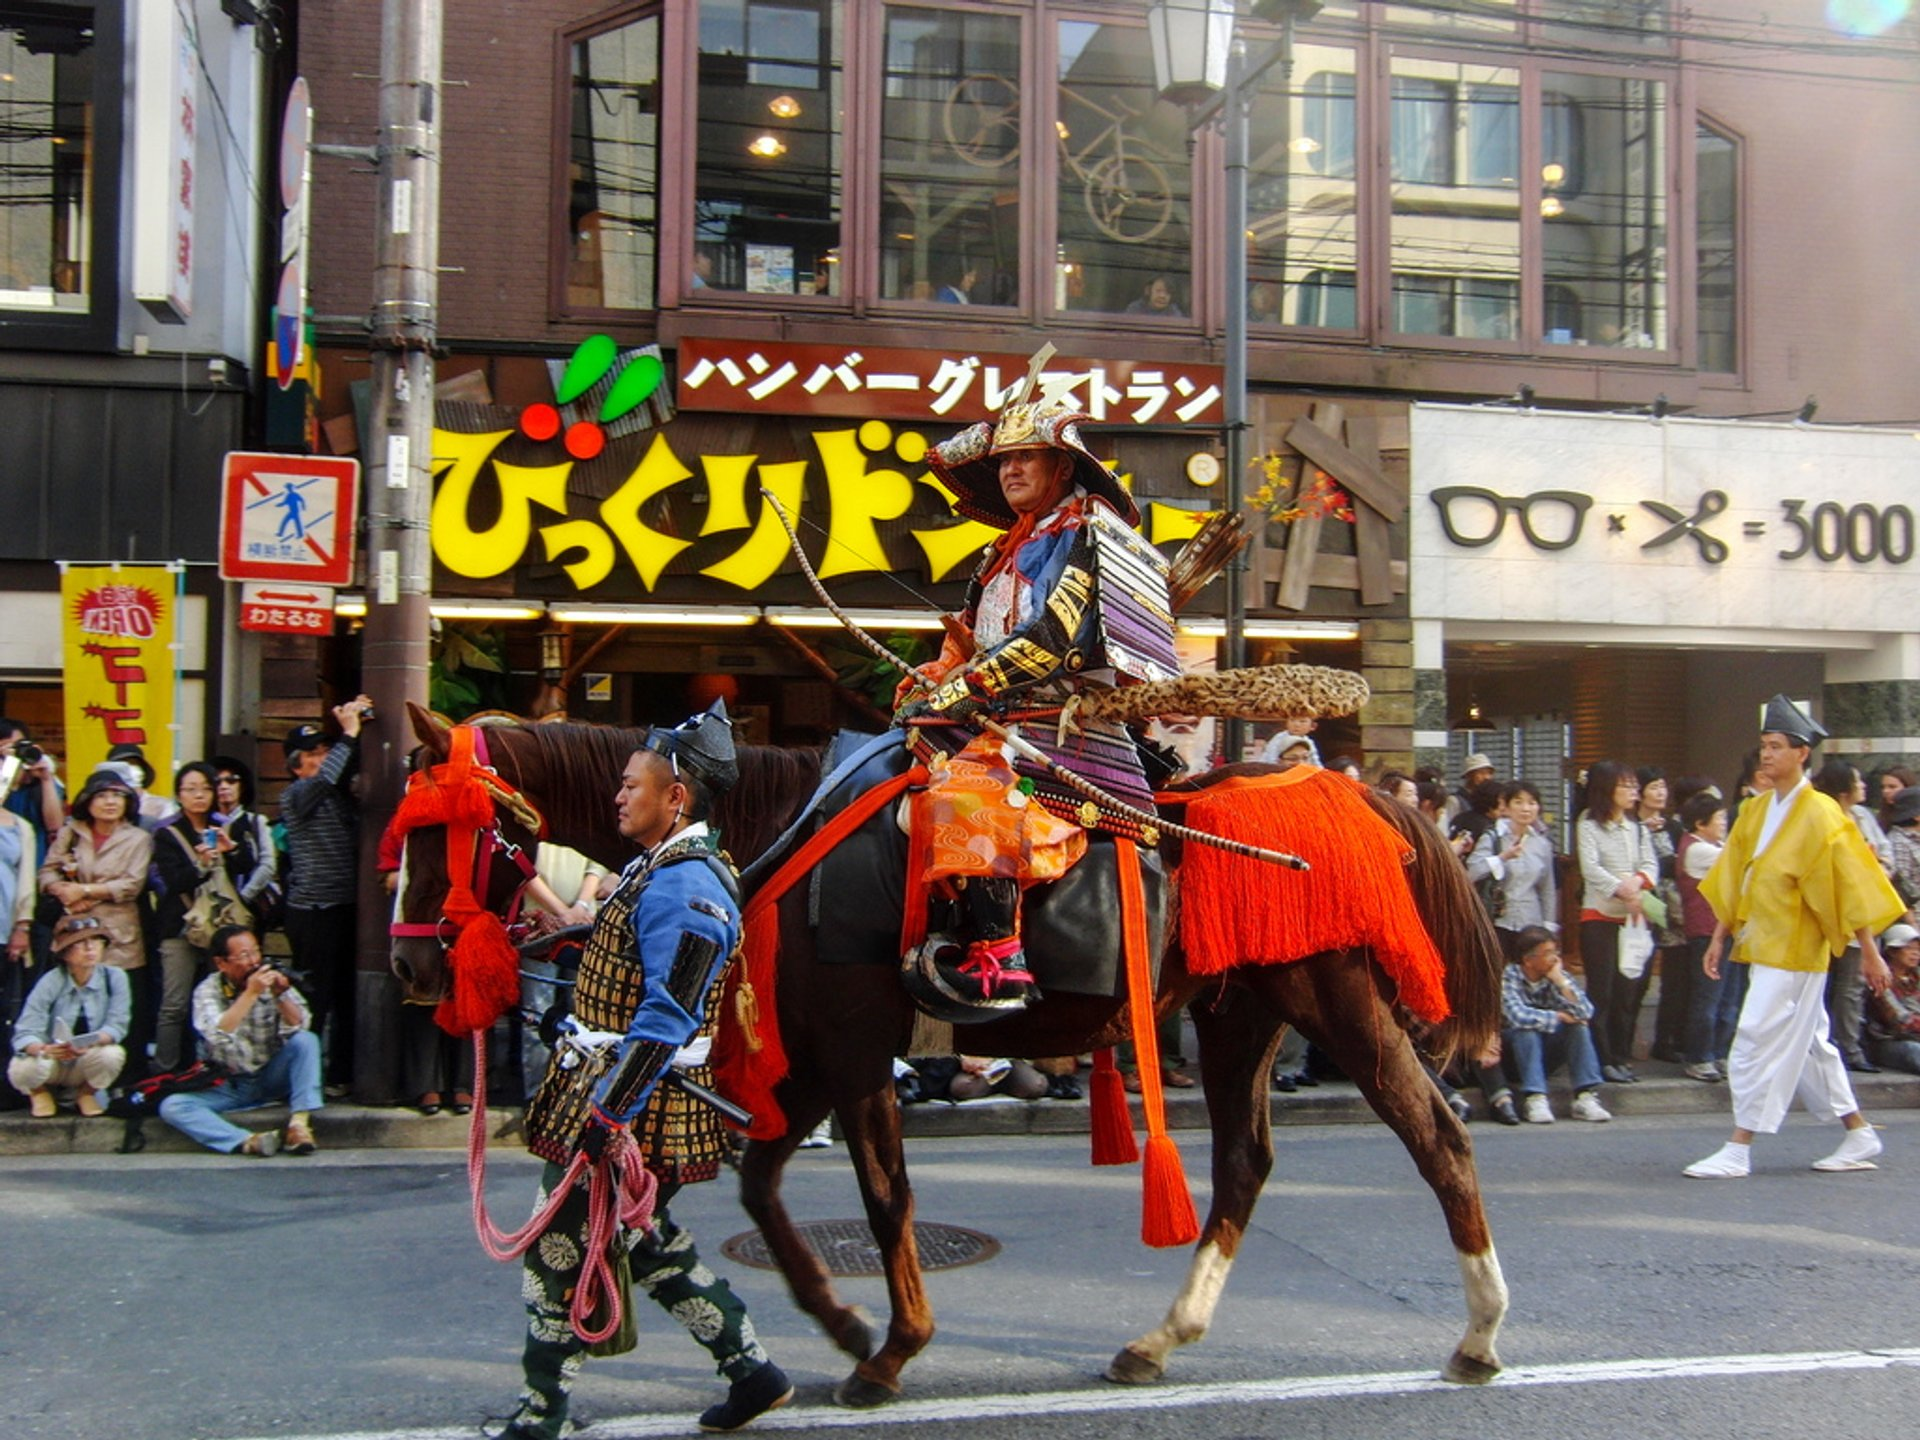 Best time to see Jidai Matsuri (Festival) in Kyoto